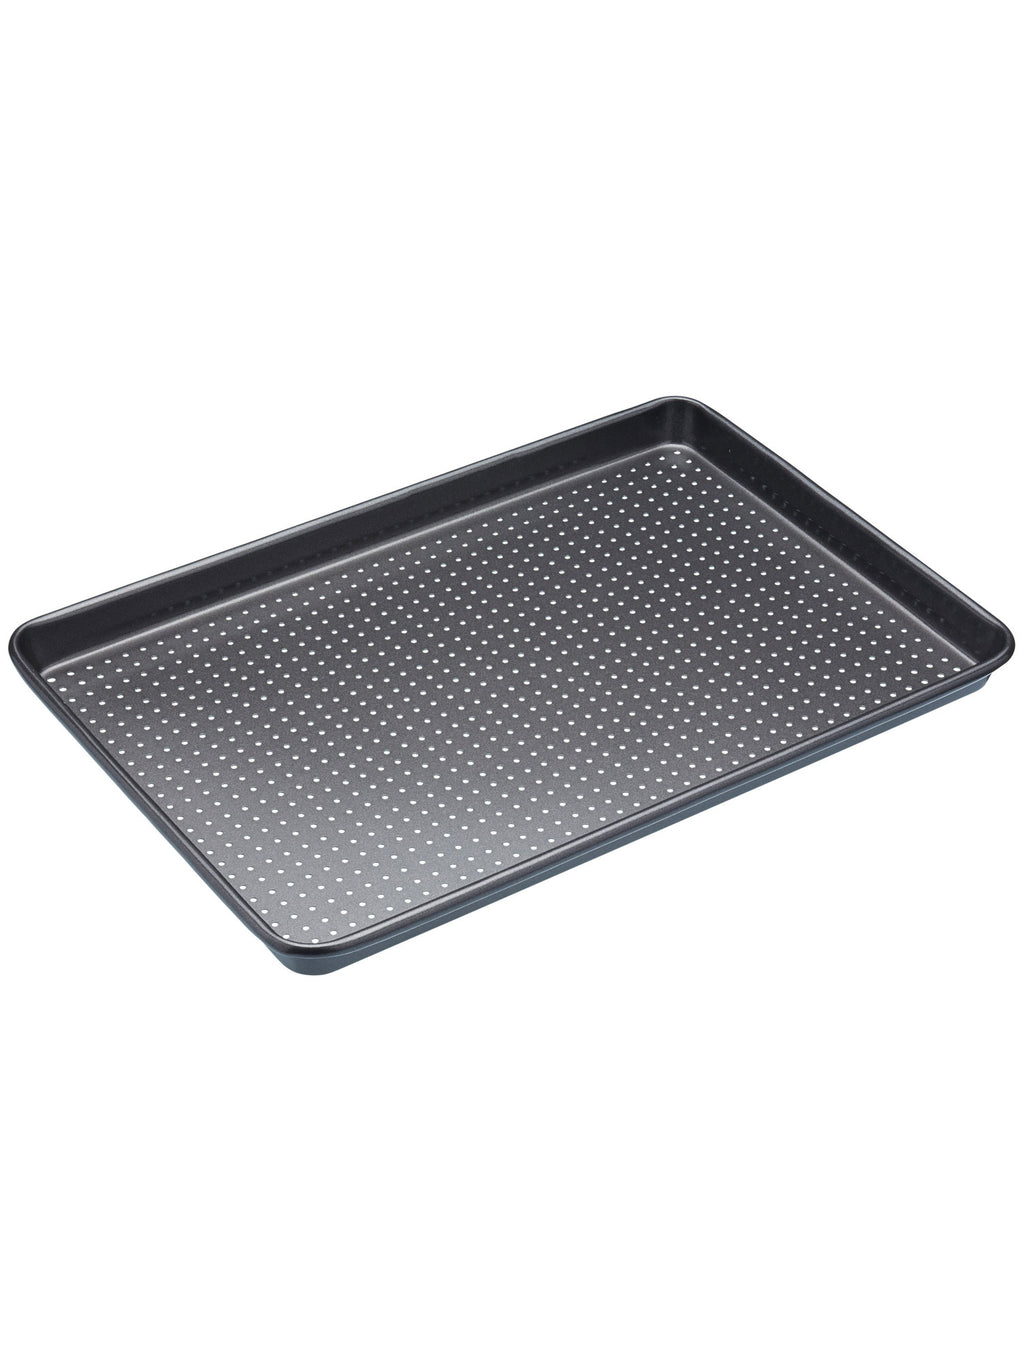 Crusty Bake Baking/Cookie Tray-38cm